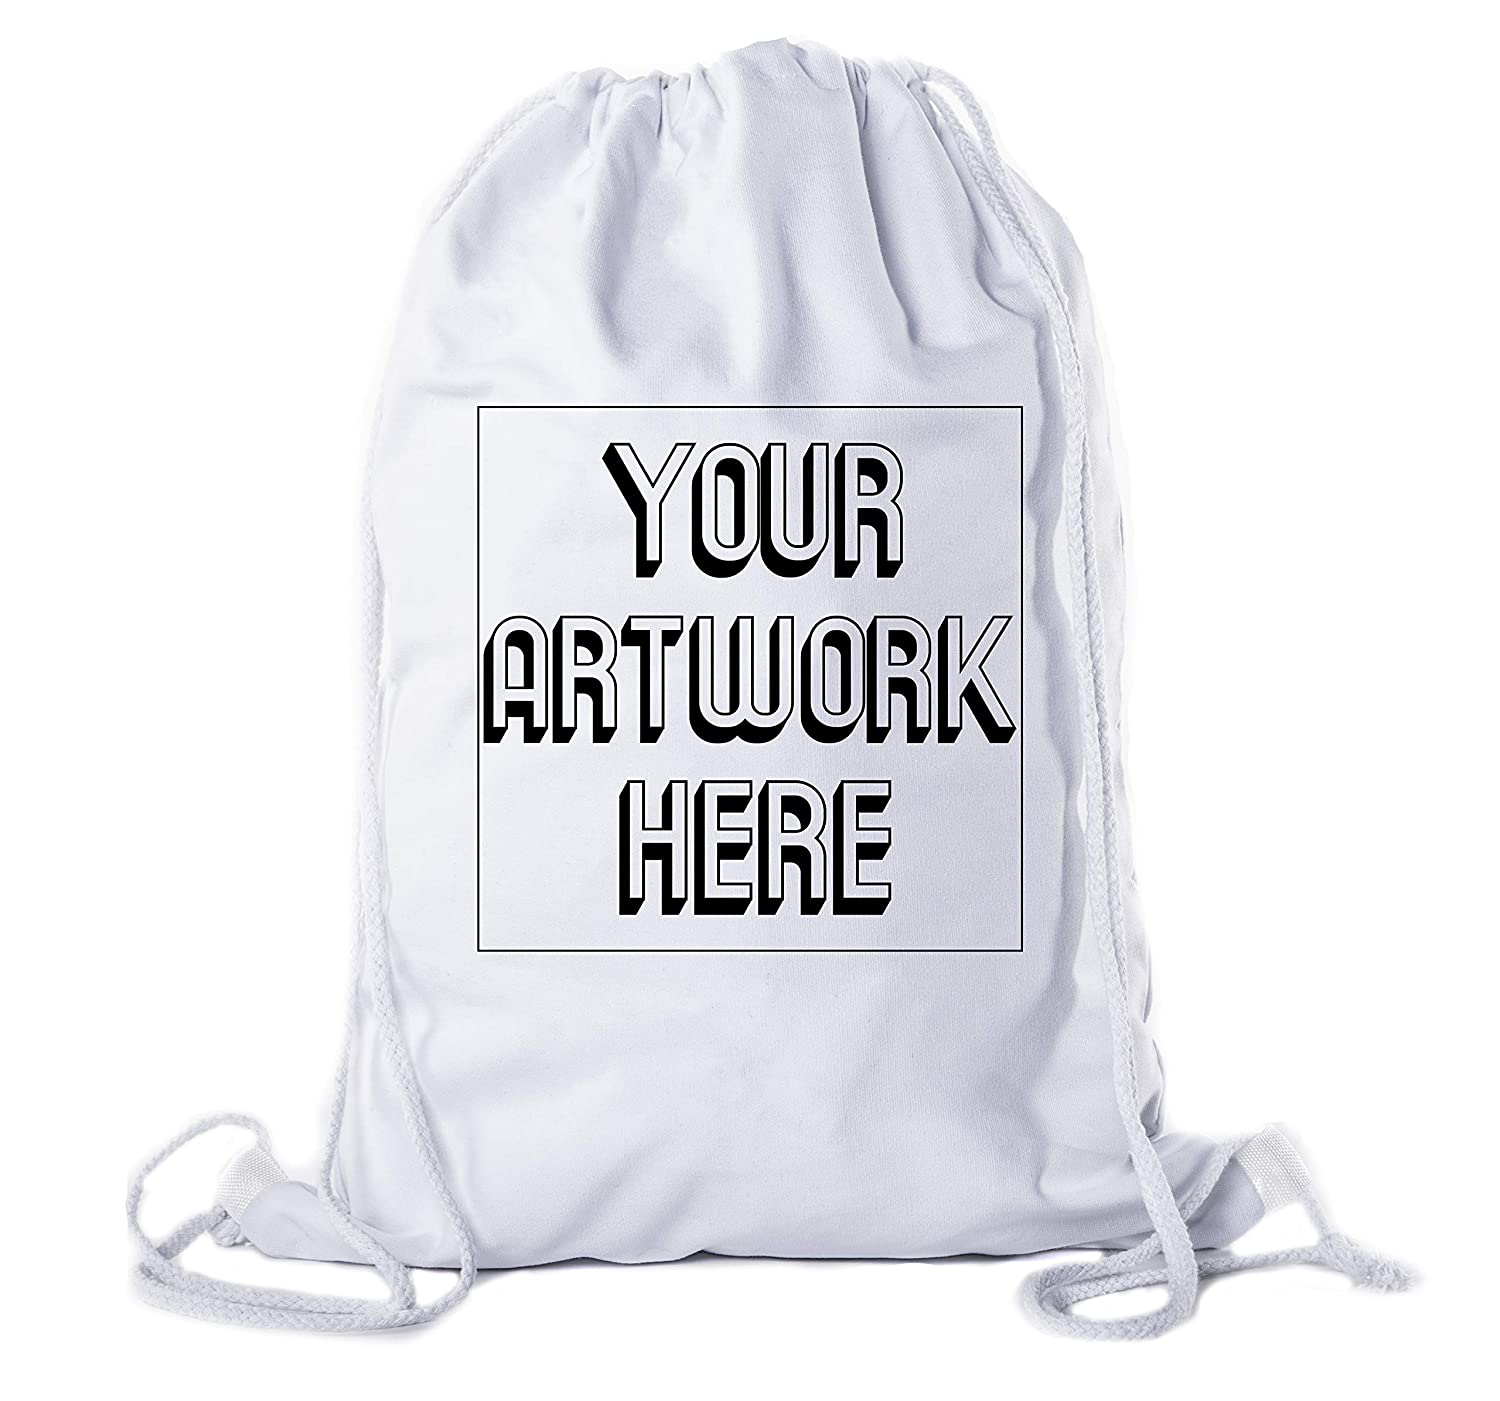 Personalized Promotional Cotton Bags Mato /& Hash Wholesale Custom Drawstring Backpacks